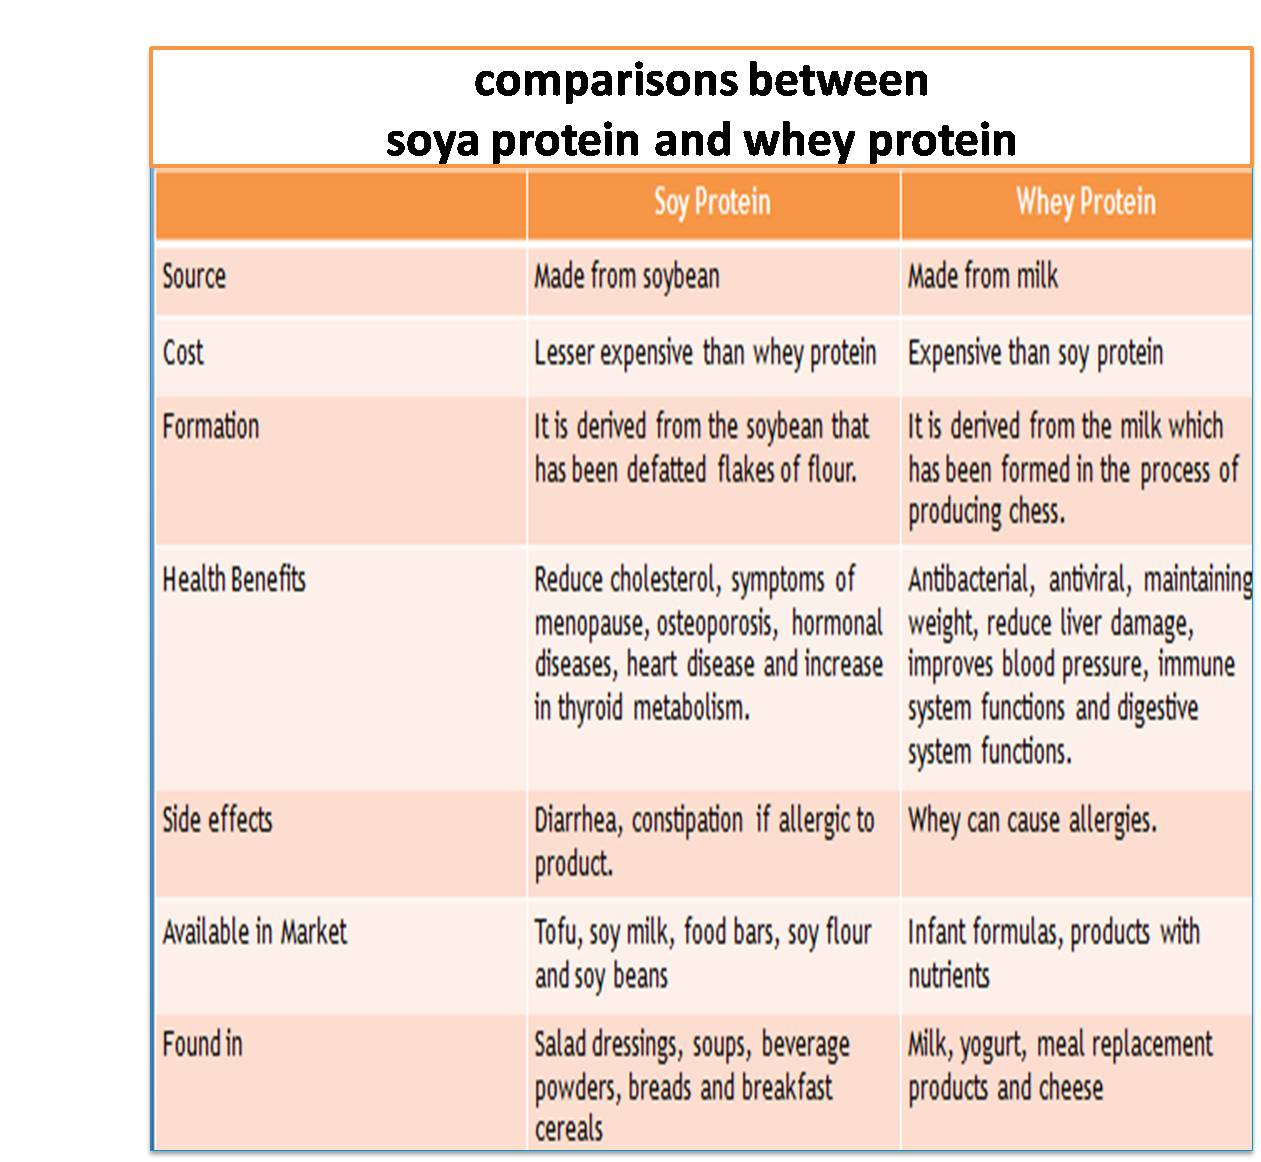 comparisons between soya protein and whey protein